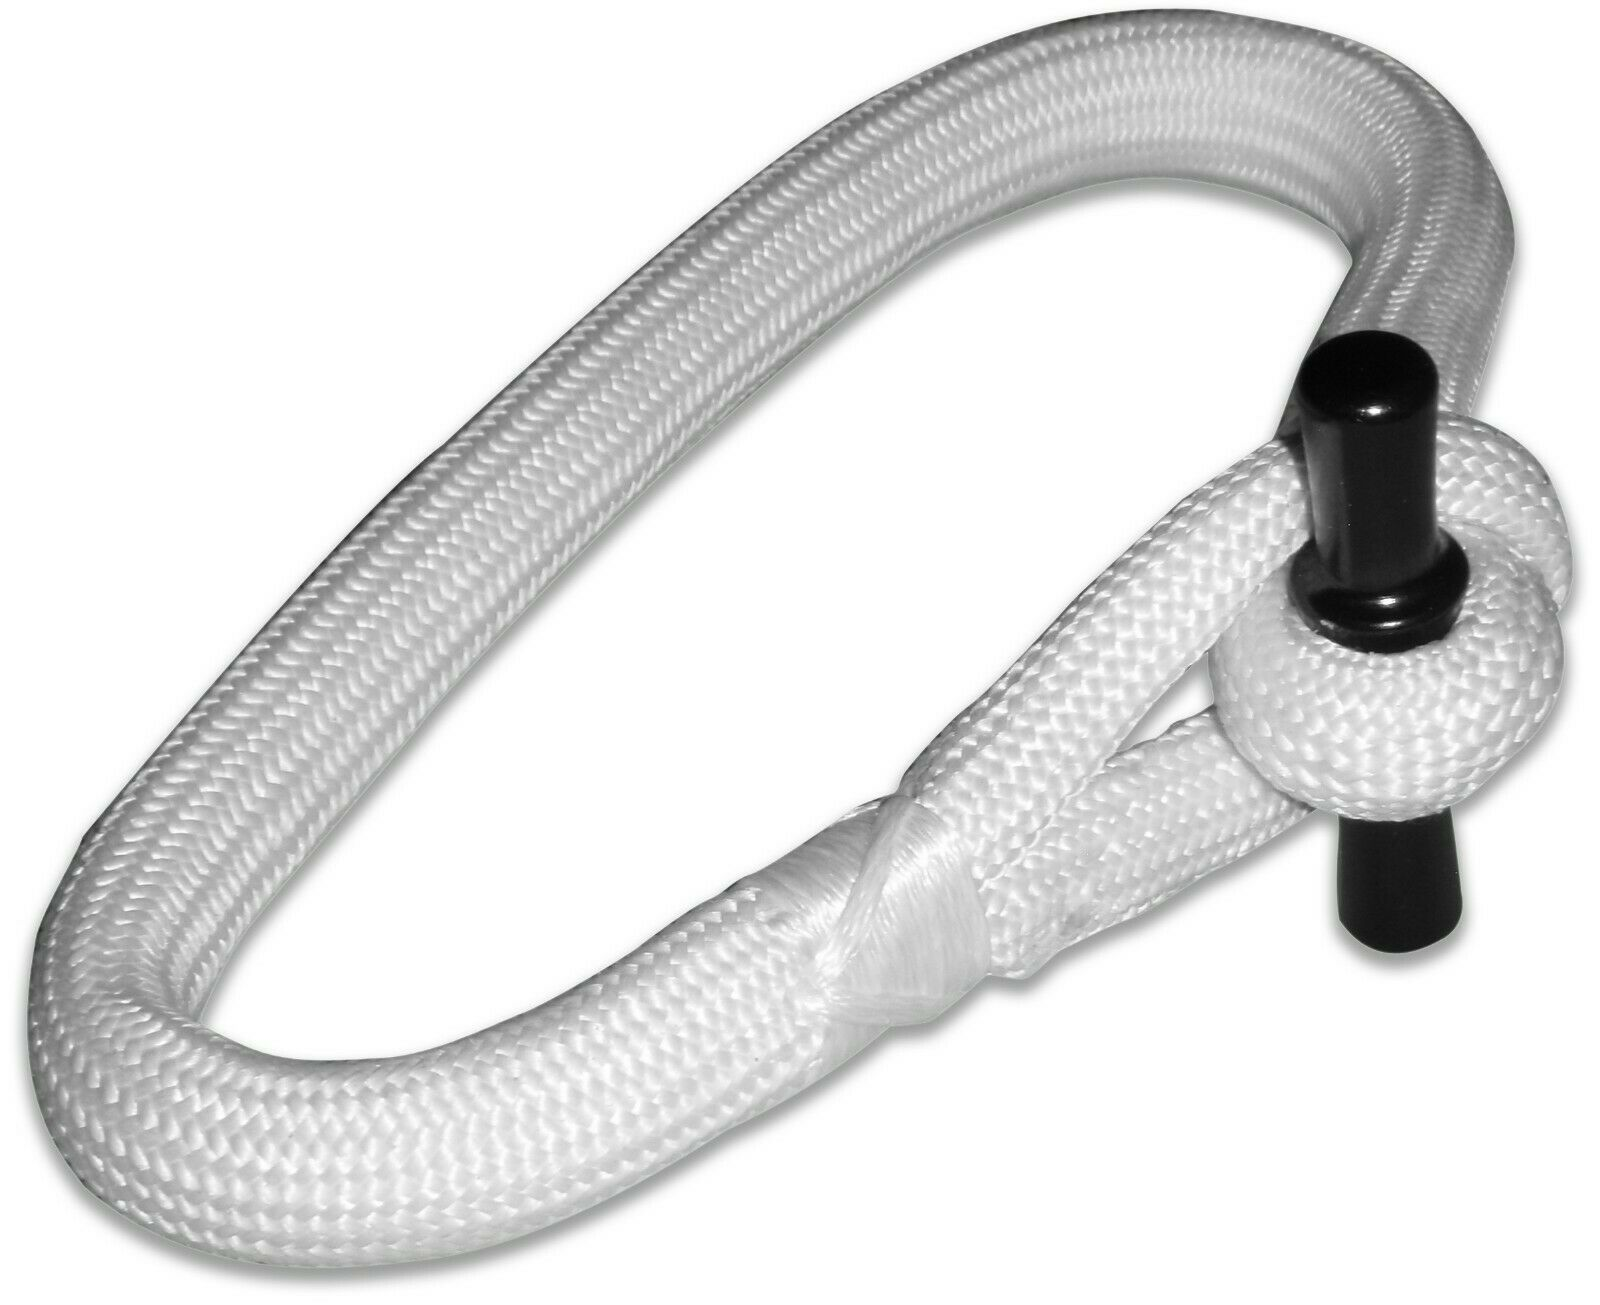 0.5T - 3.0T SWL Covered Dyneema Dog Bone Loops  Various Sizes & Strengths